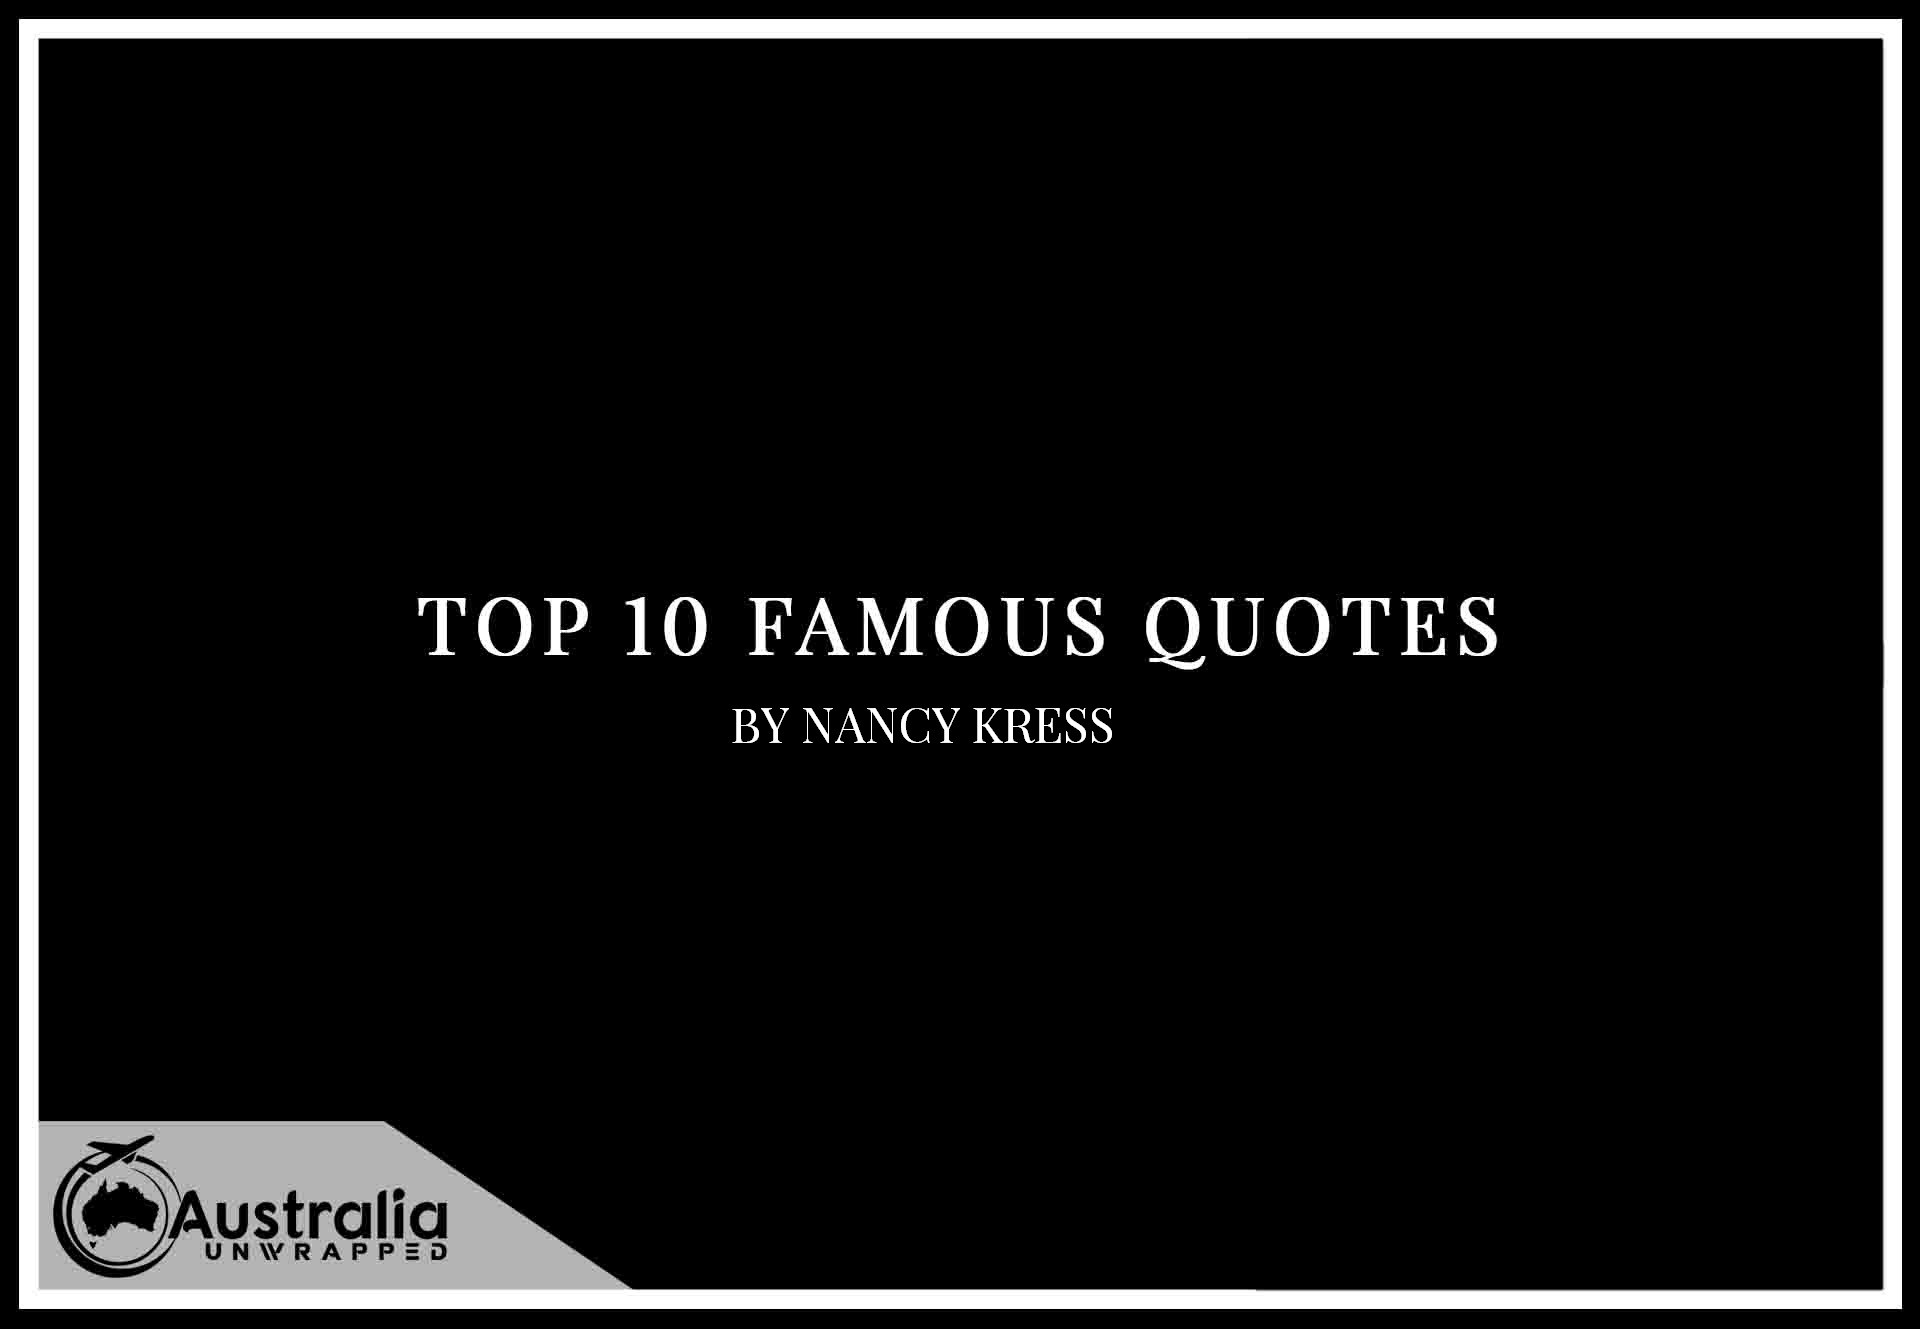 Top 10 Famous Quotes by Author Nancy Kress